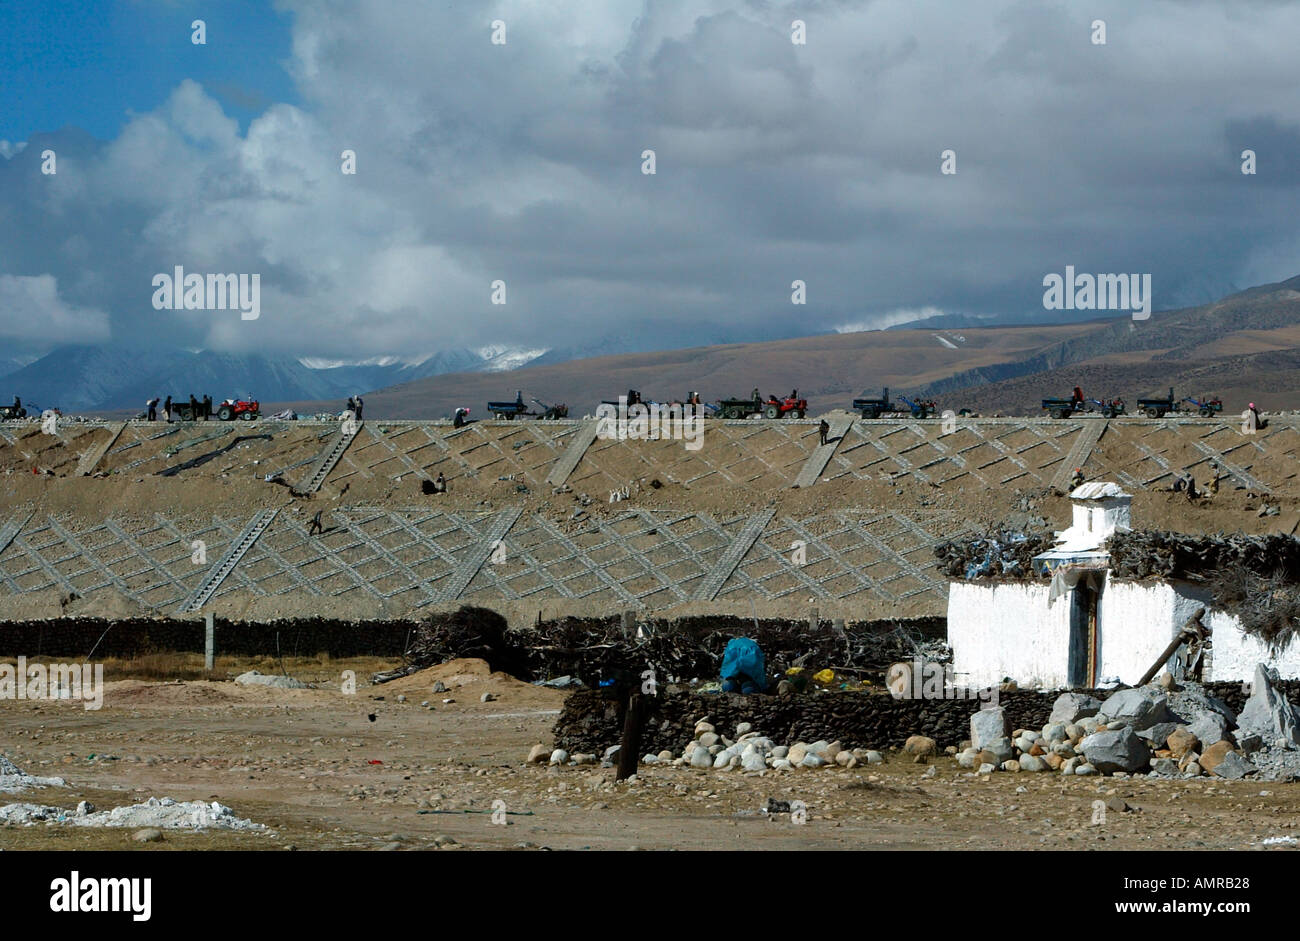 Workers on embankment building the 1200 mile Qinghai Tibetan railway linking the main part of China with remote Lhasa - Stock Image